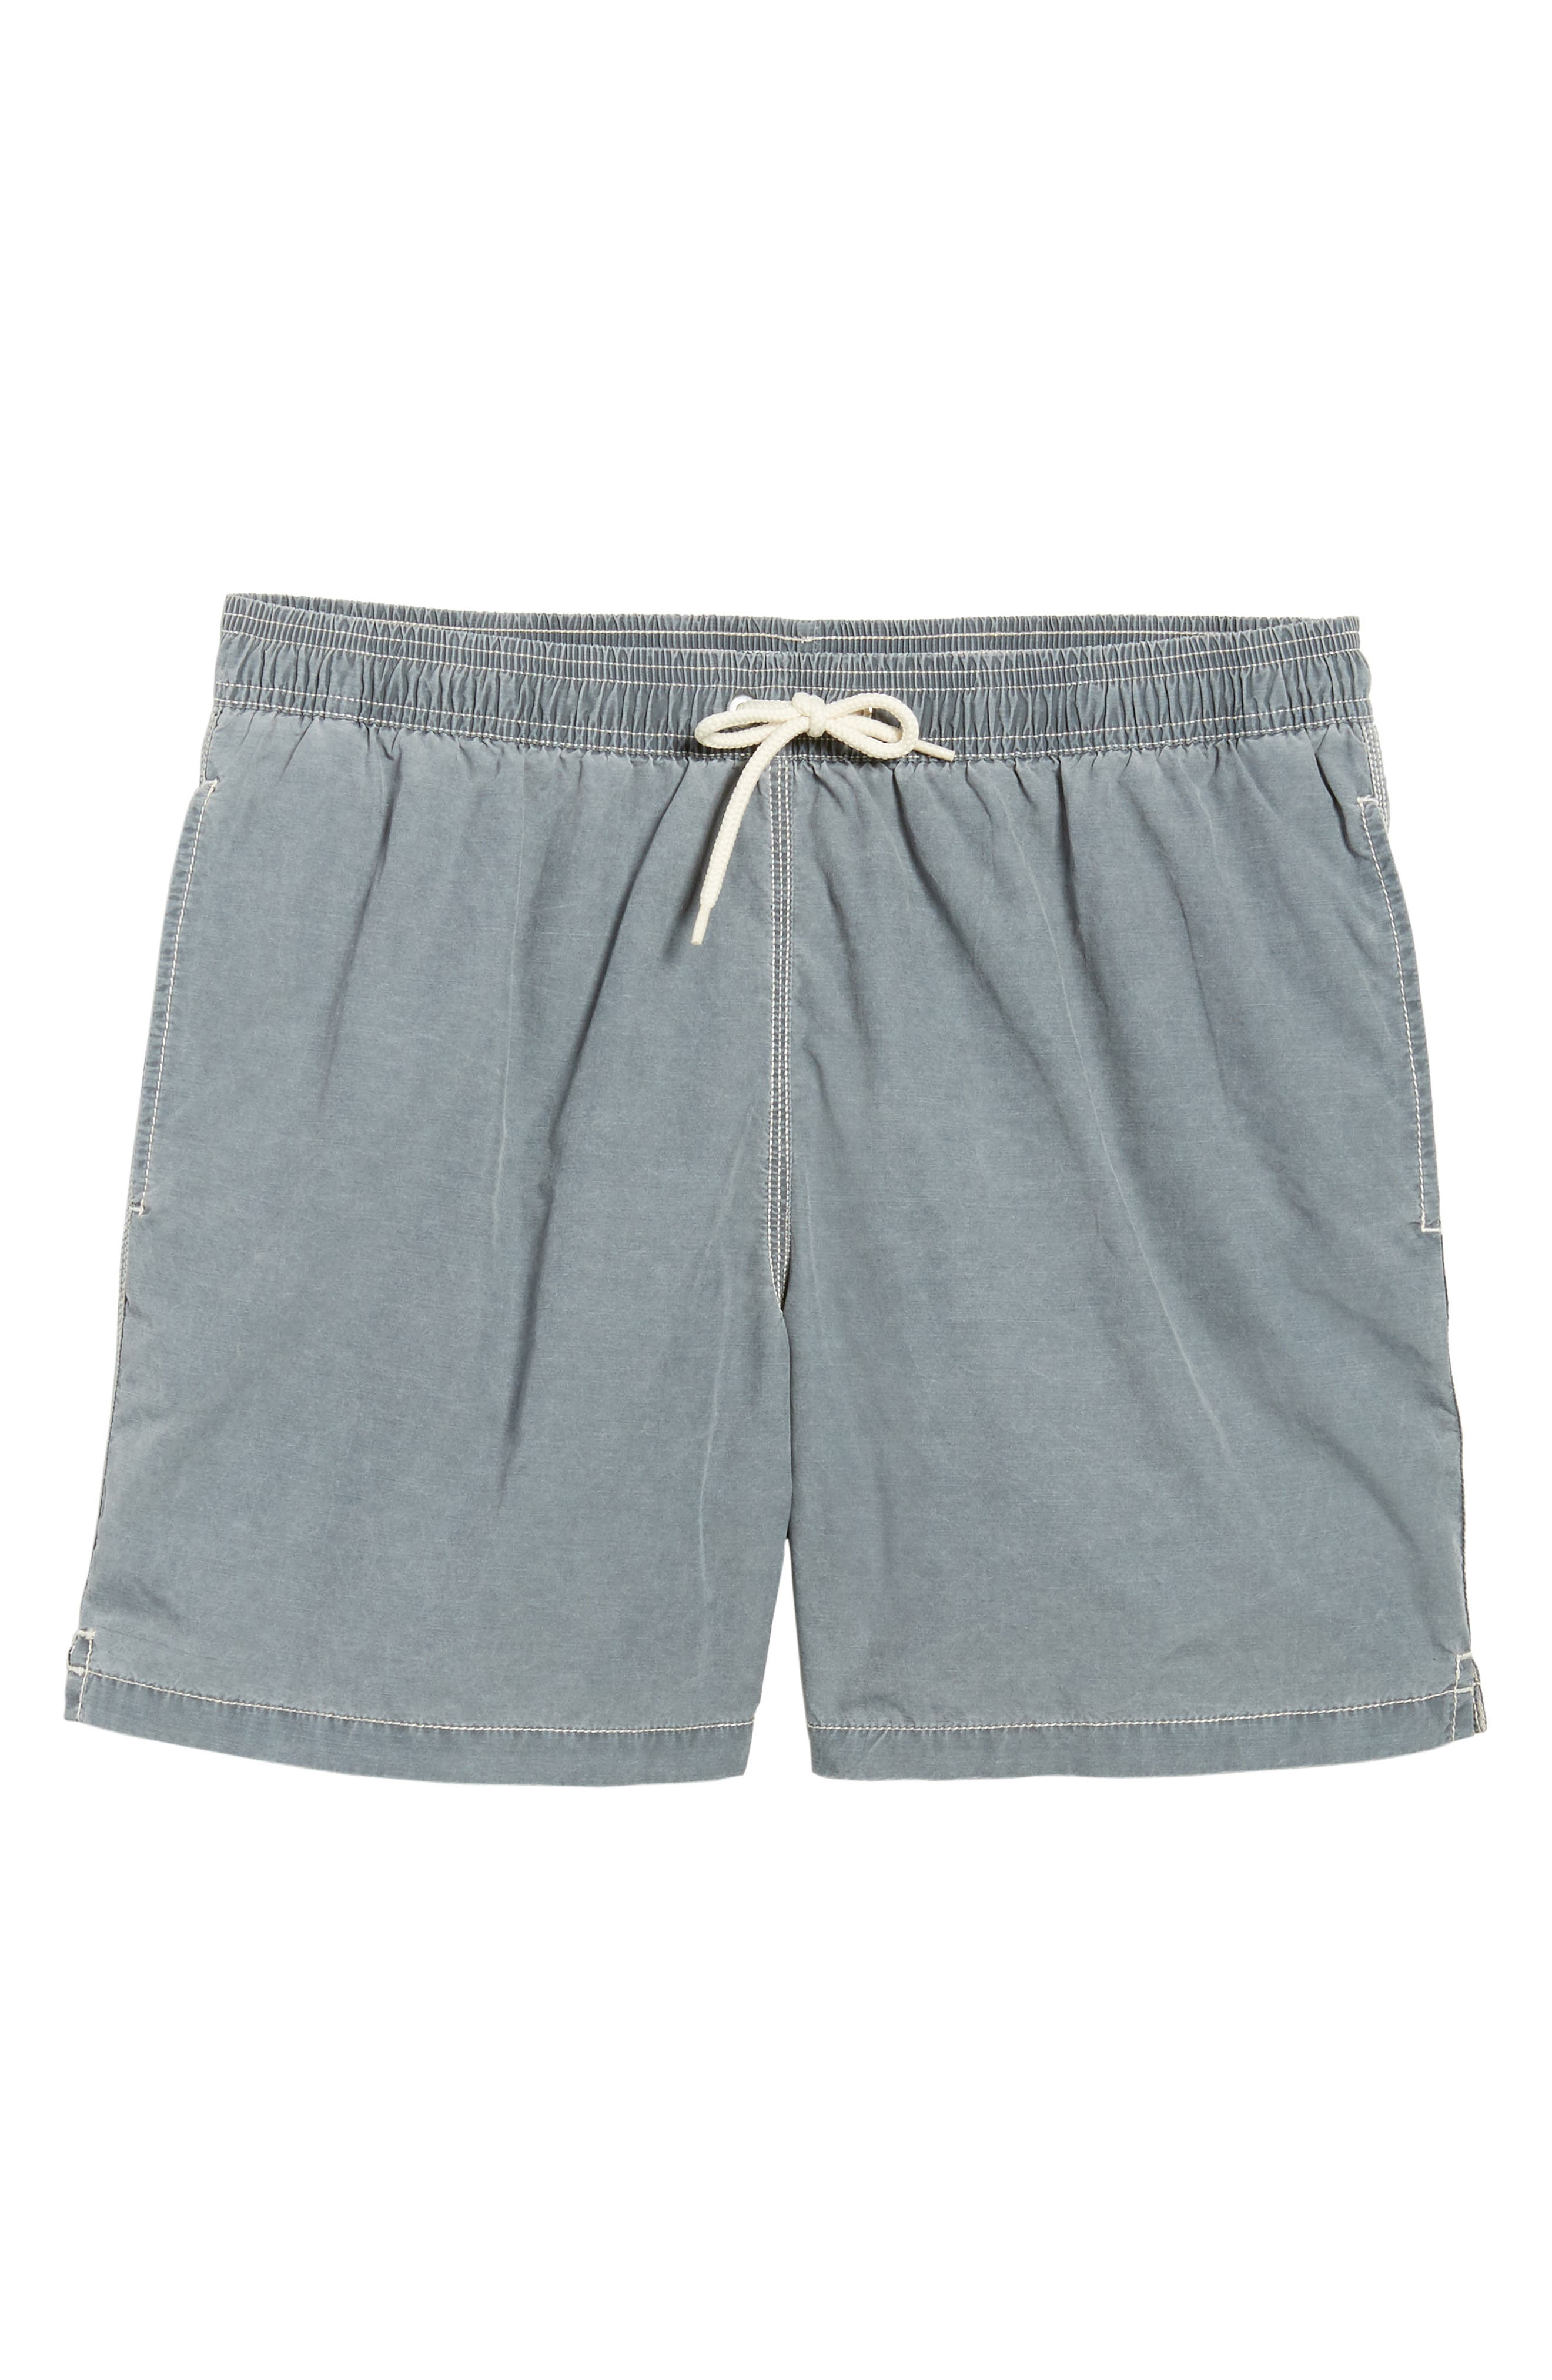 Victor Swim Trunks,                             Alternate thumbnail 6, color,                             021